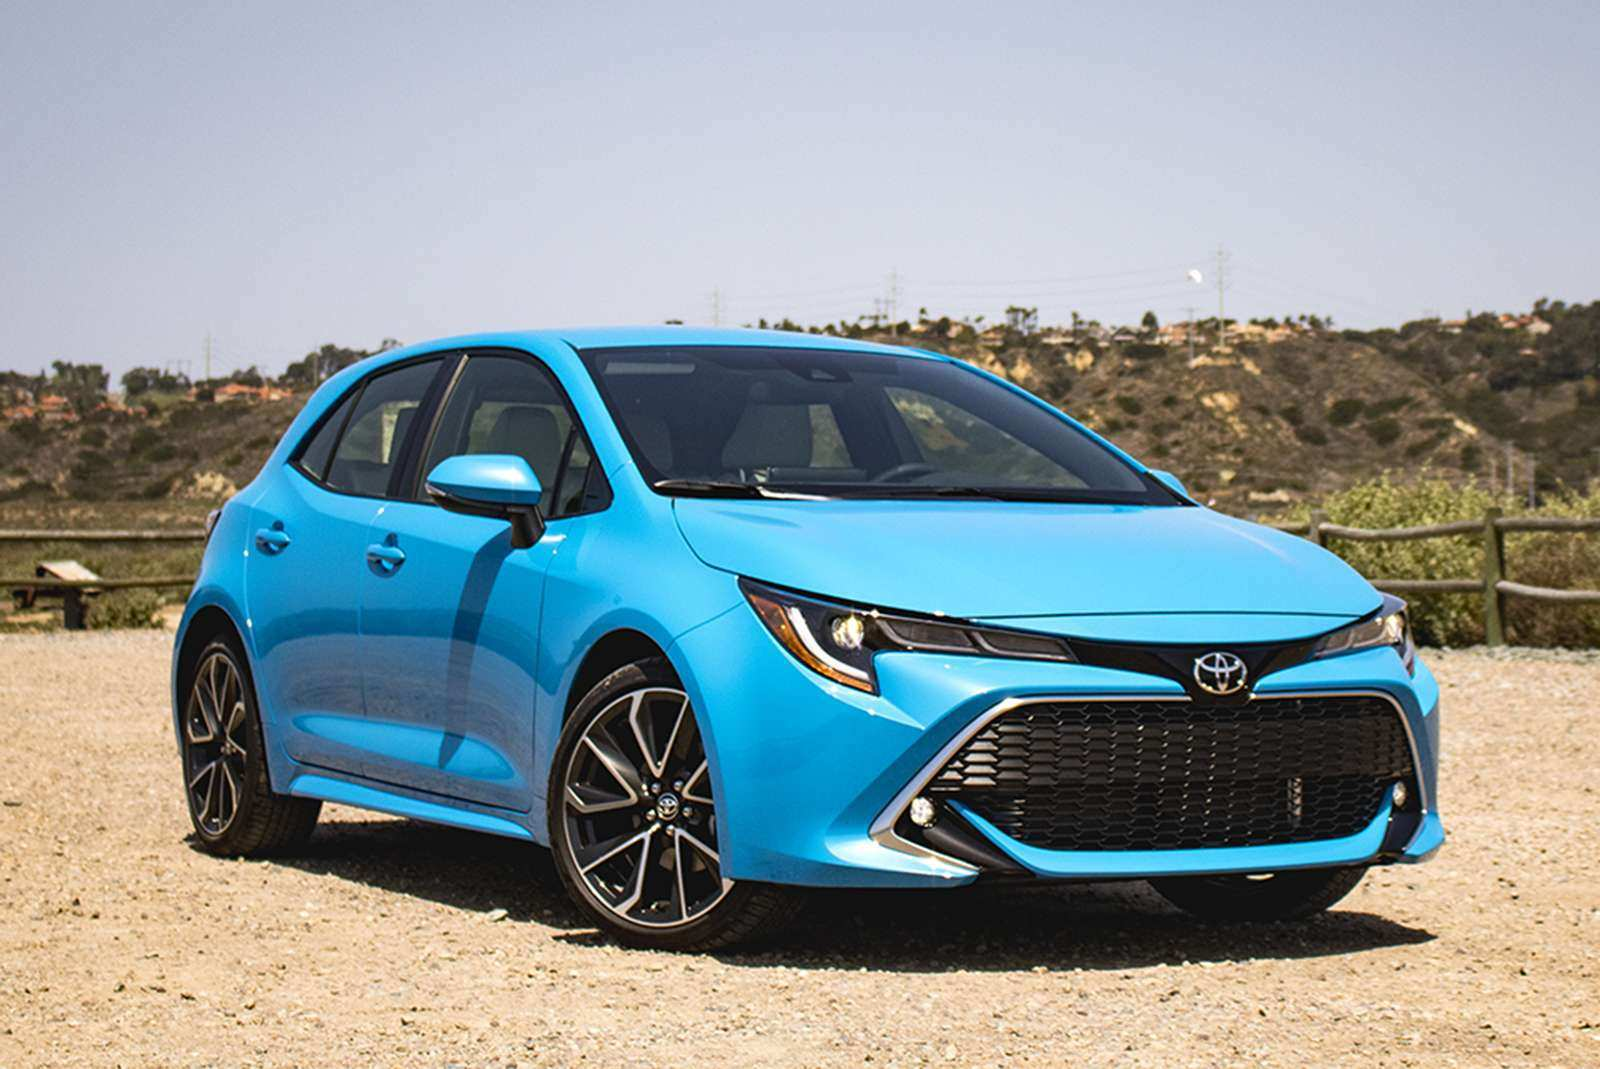 54 Great 2019 Toyota Corolla Hatchback Review Images by 2019 Toyota Corolla Hatchback Review